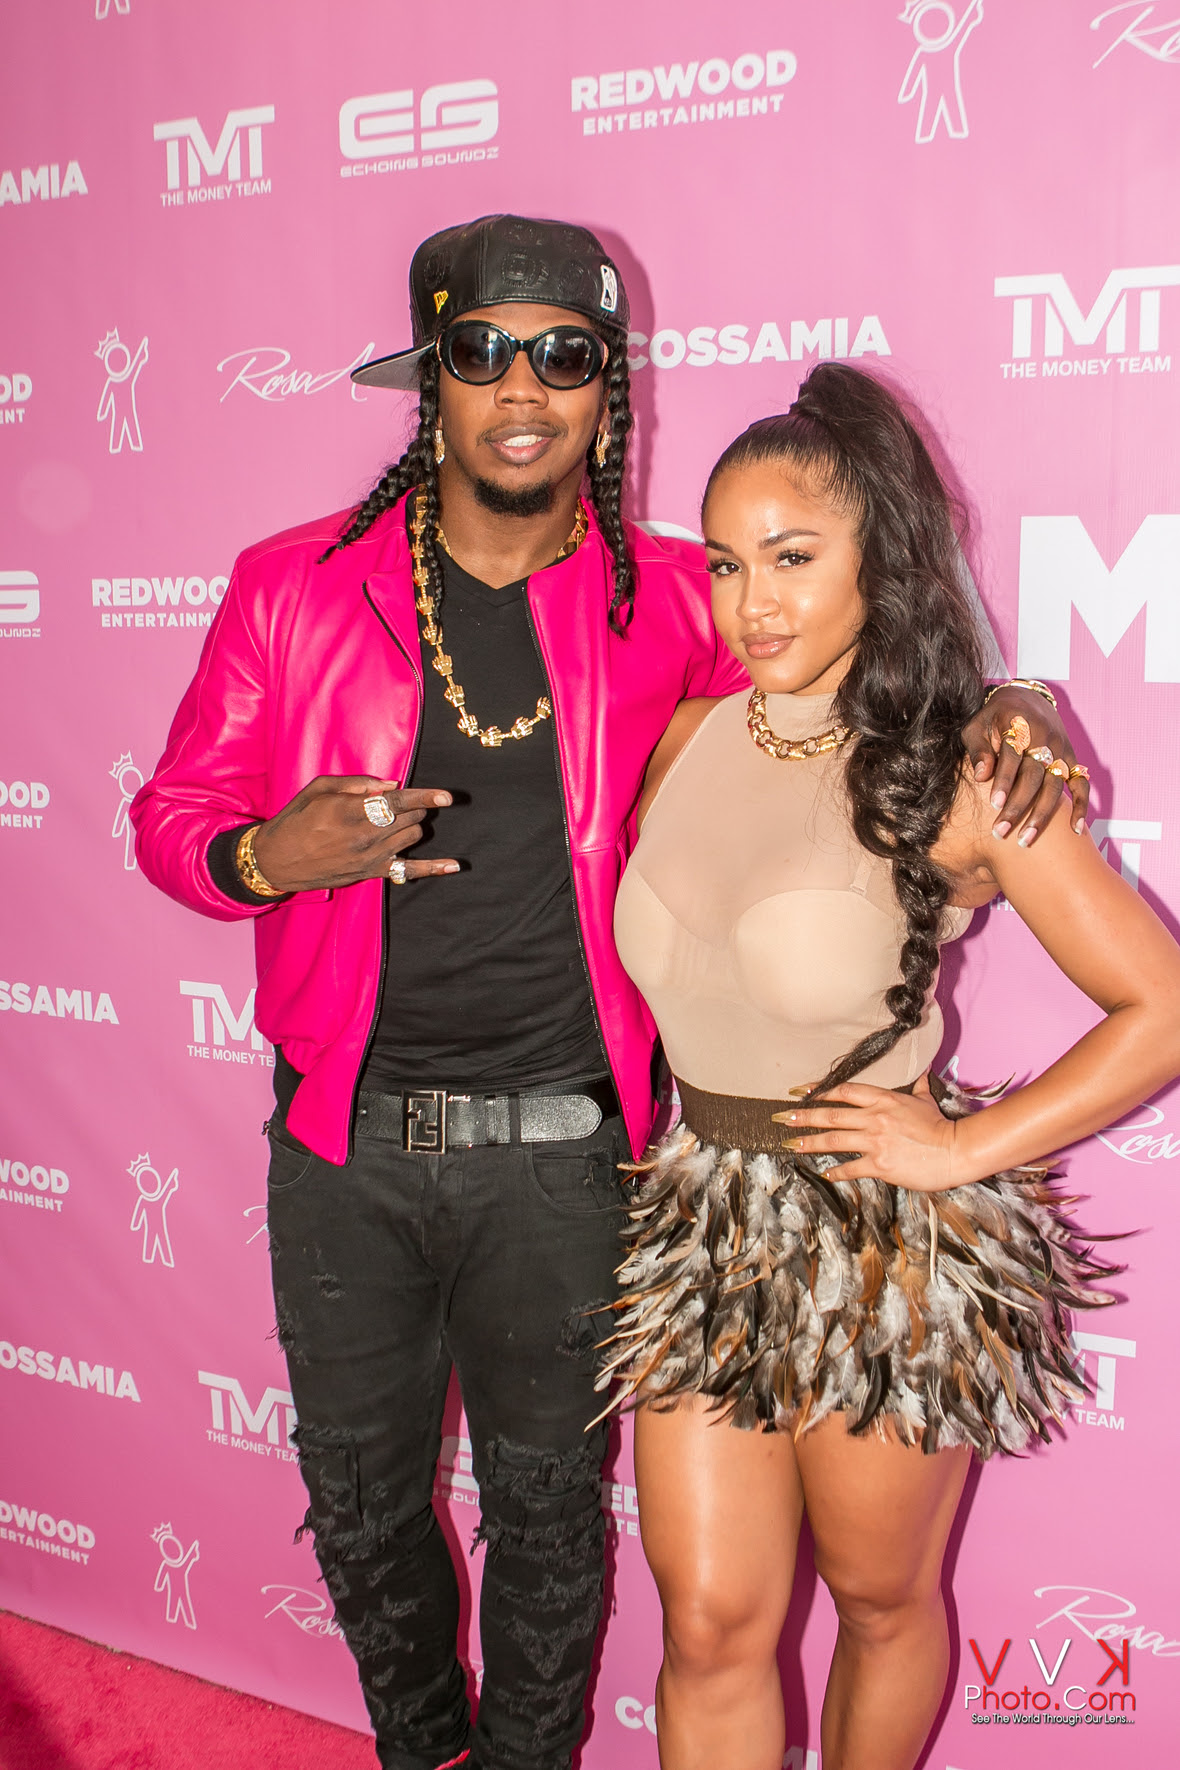 Trinidad James and Rosa Acosta 2